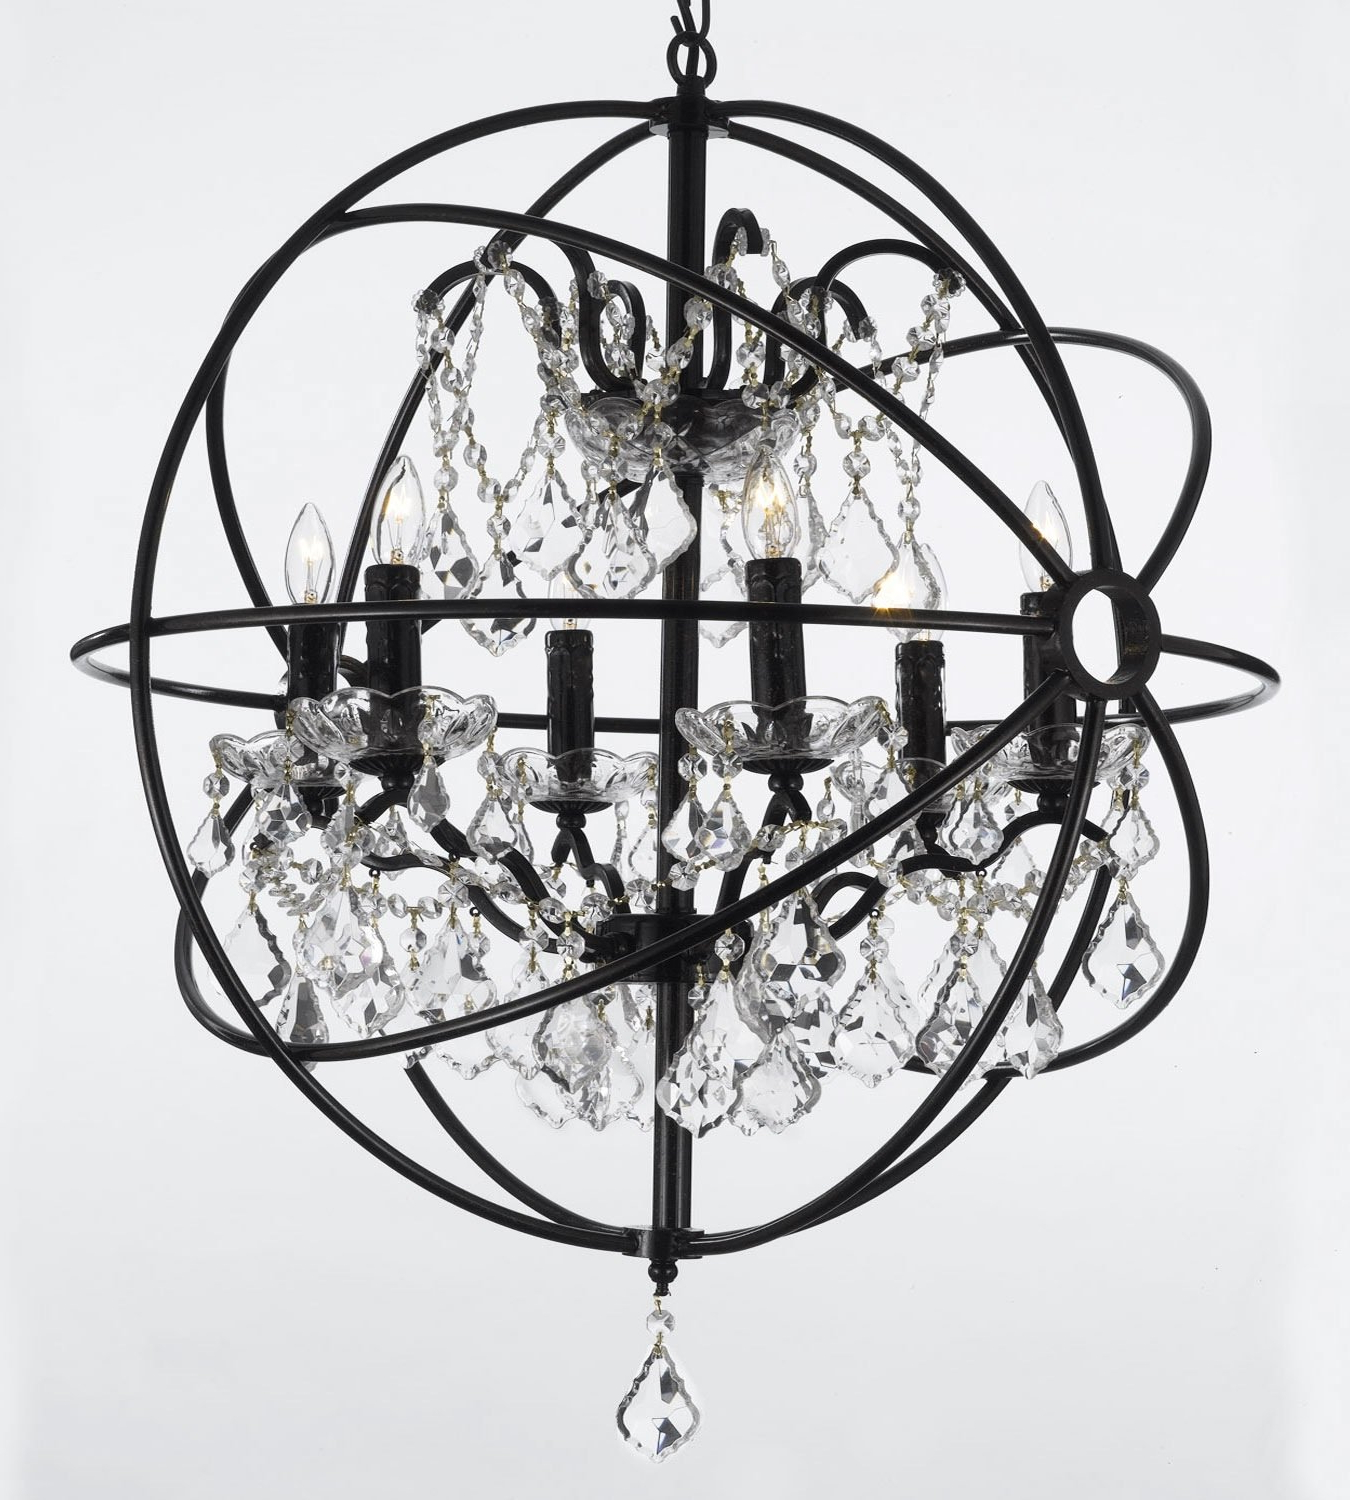 Widely Used Calderdale Orb 6 Light Globe Chandelier Regarding Eastbourne 6 Light Unique / Statement Chandeliers (View 25 of 25)